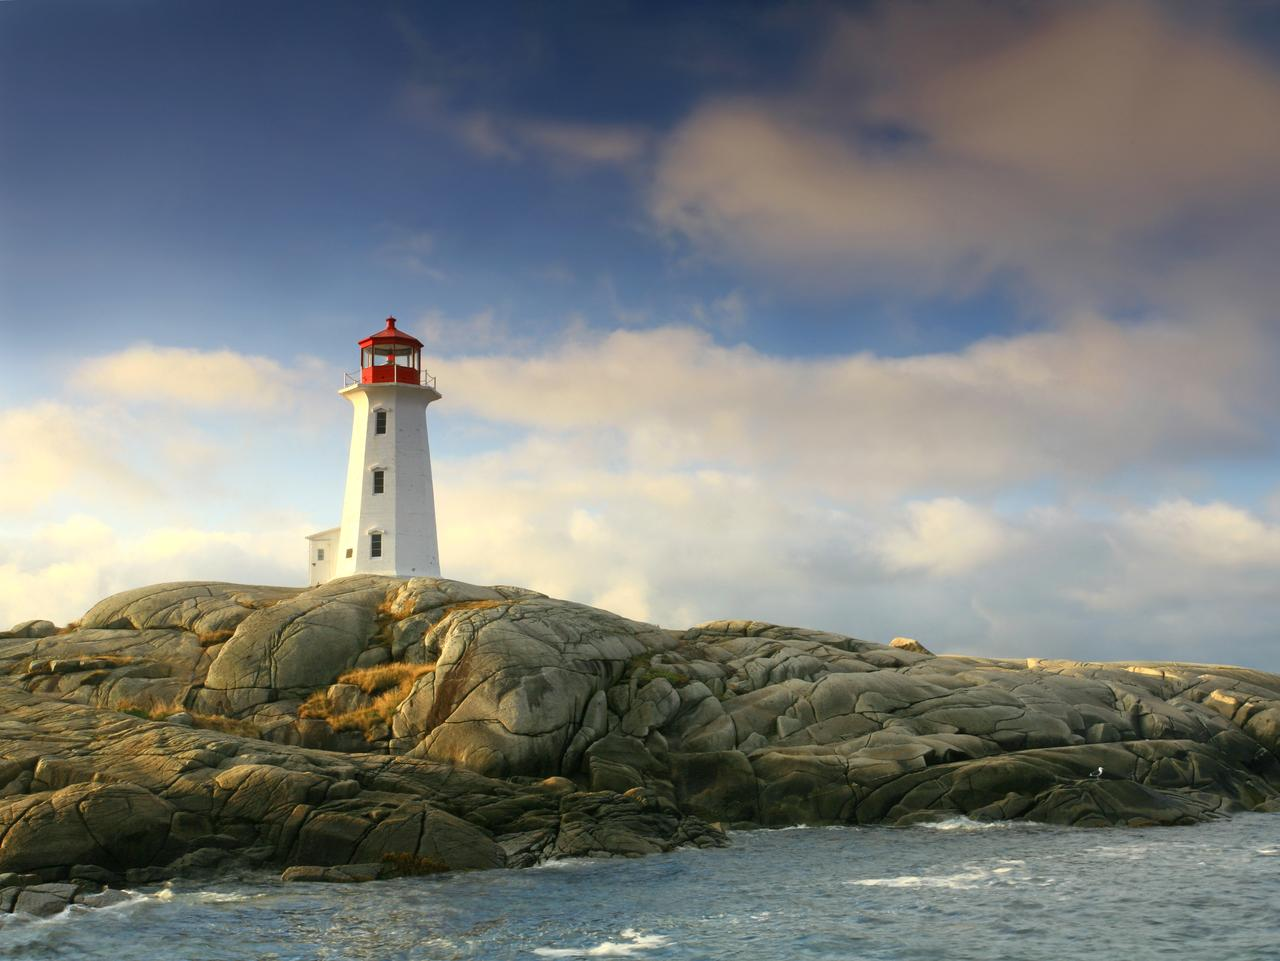 The beautiful lighthouse at Peggy's Cove, Nova Scotia in dramatic morning light. This is one of the most famous lights in Canada and was also the scene of a tragic plane crash in the 90s. The water-worn rocks and dramatic lighthouse clutching the rocks are classic Canadiana. Thousands of people take the short drive from Halifax to visit Peggy's Cove, a classic fishing village, each year.